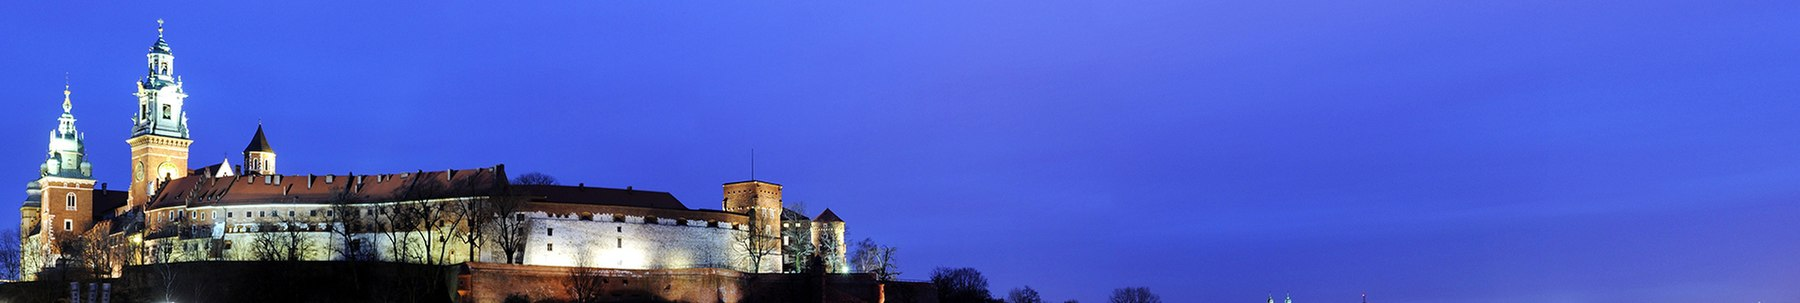 Krakow banner Wawel hill by twilight.jpg